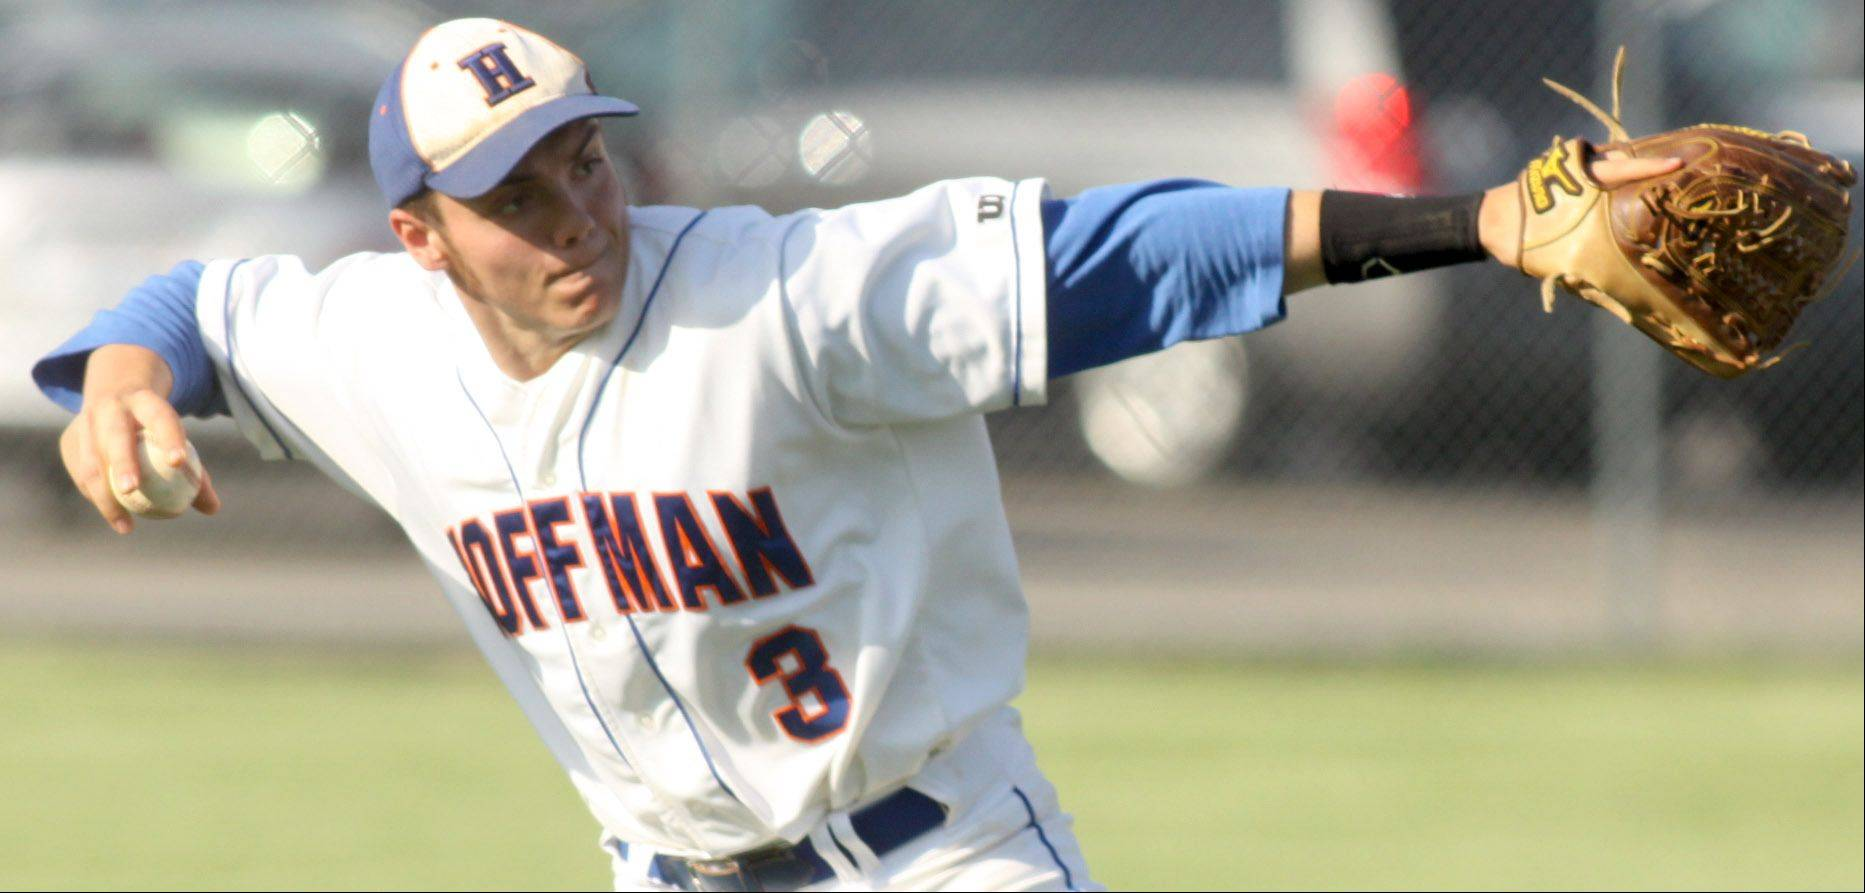 Hoffman Estates' Ethan Bloom fires to first for an out at Elgin on Monday.